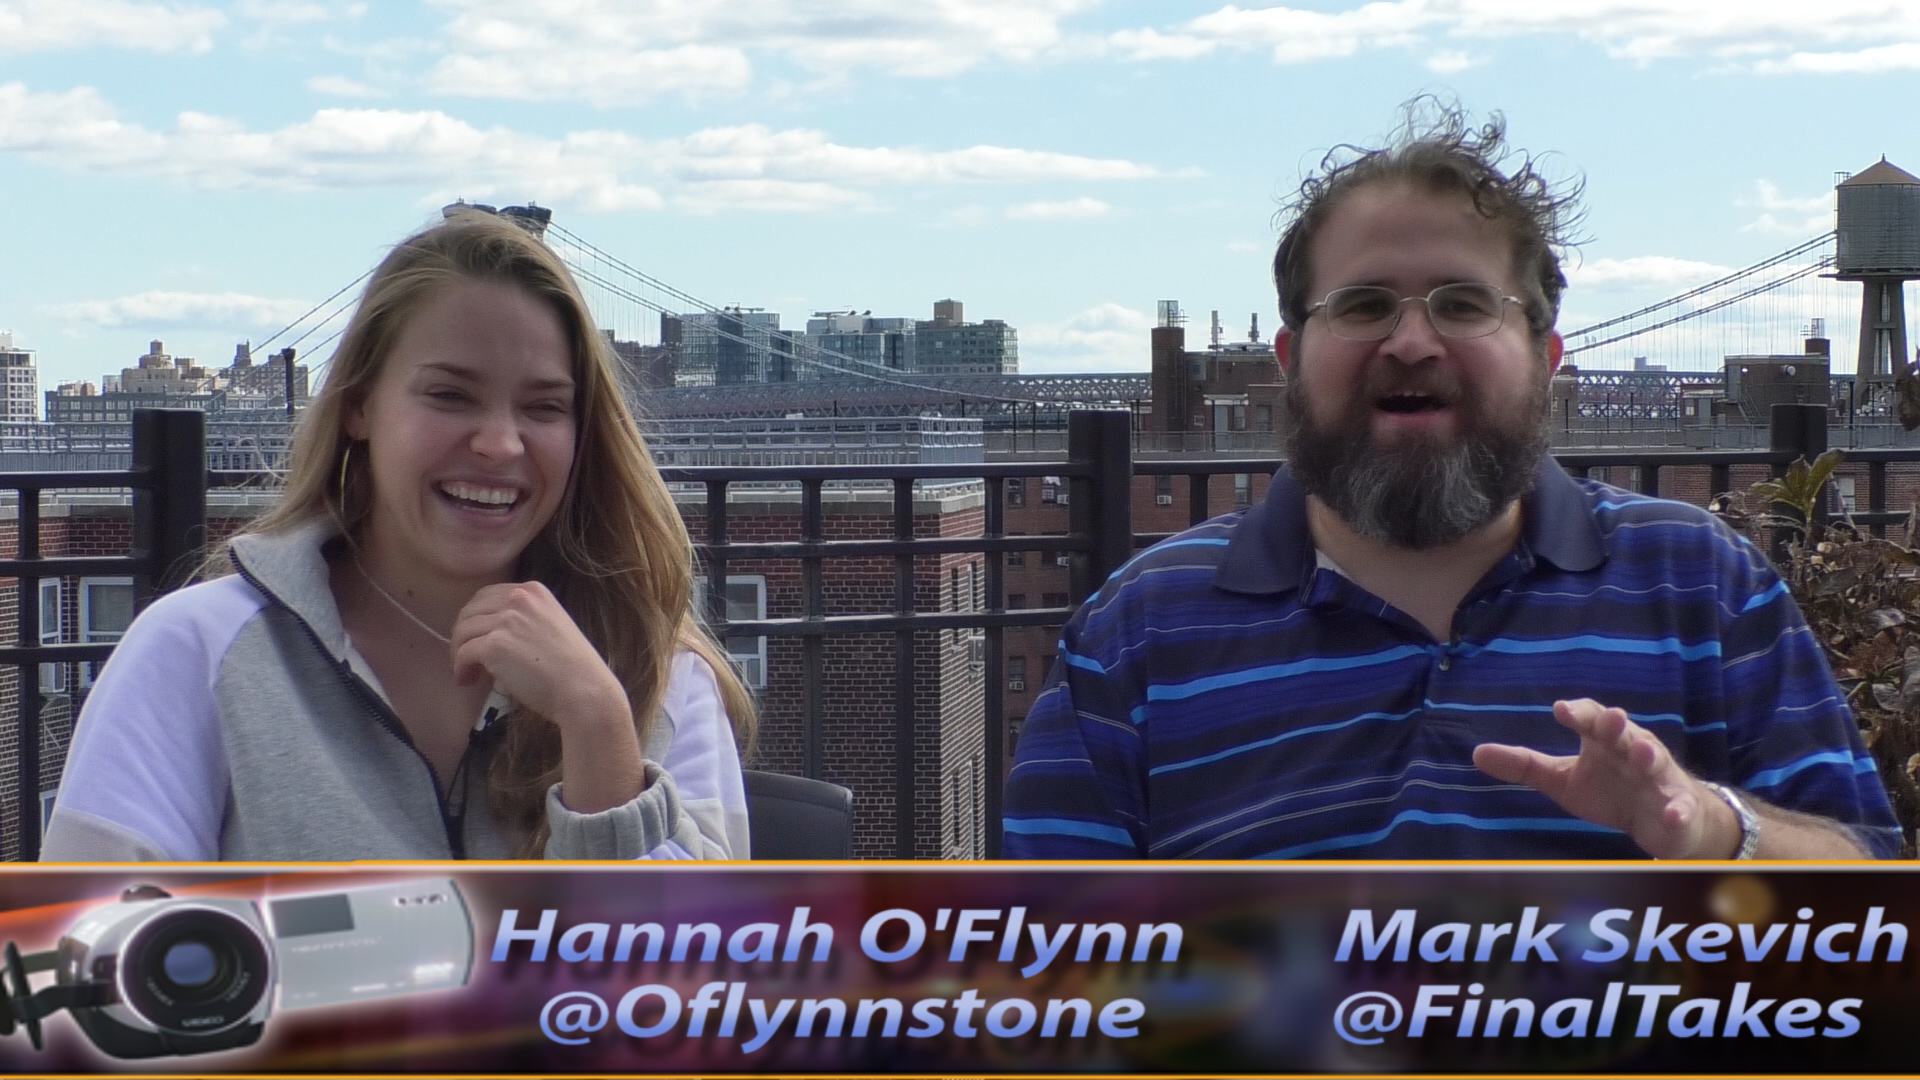 Viral dunk video star Hannah O'Flynn discusses dunk, WNBA, and more. First Final Takes Cable TV Episode